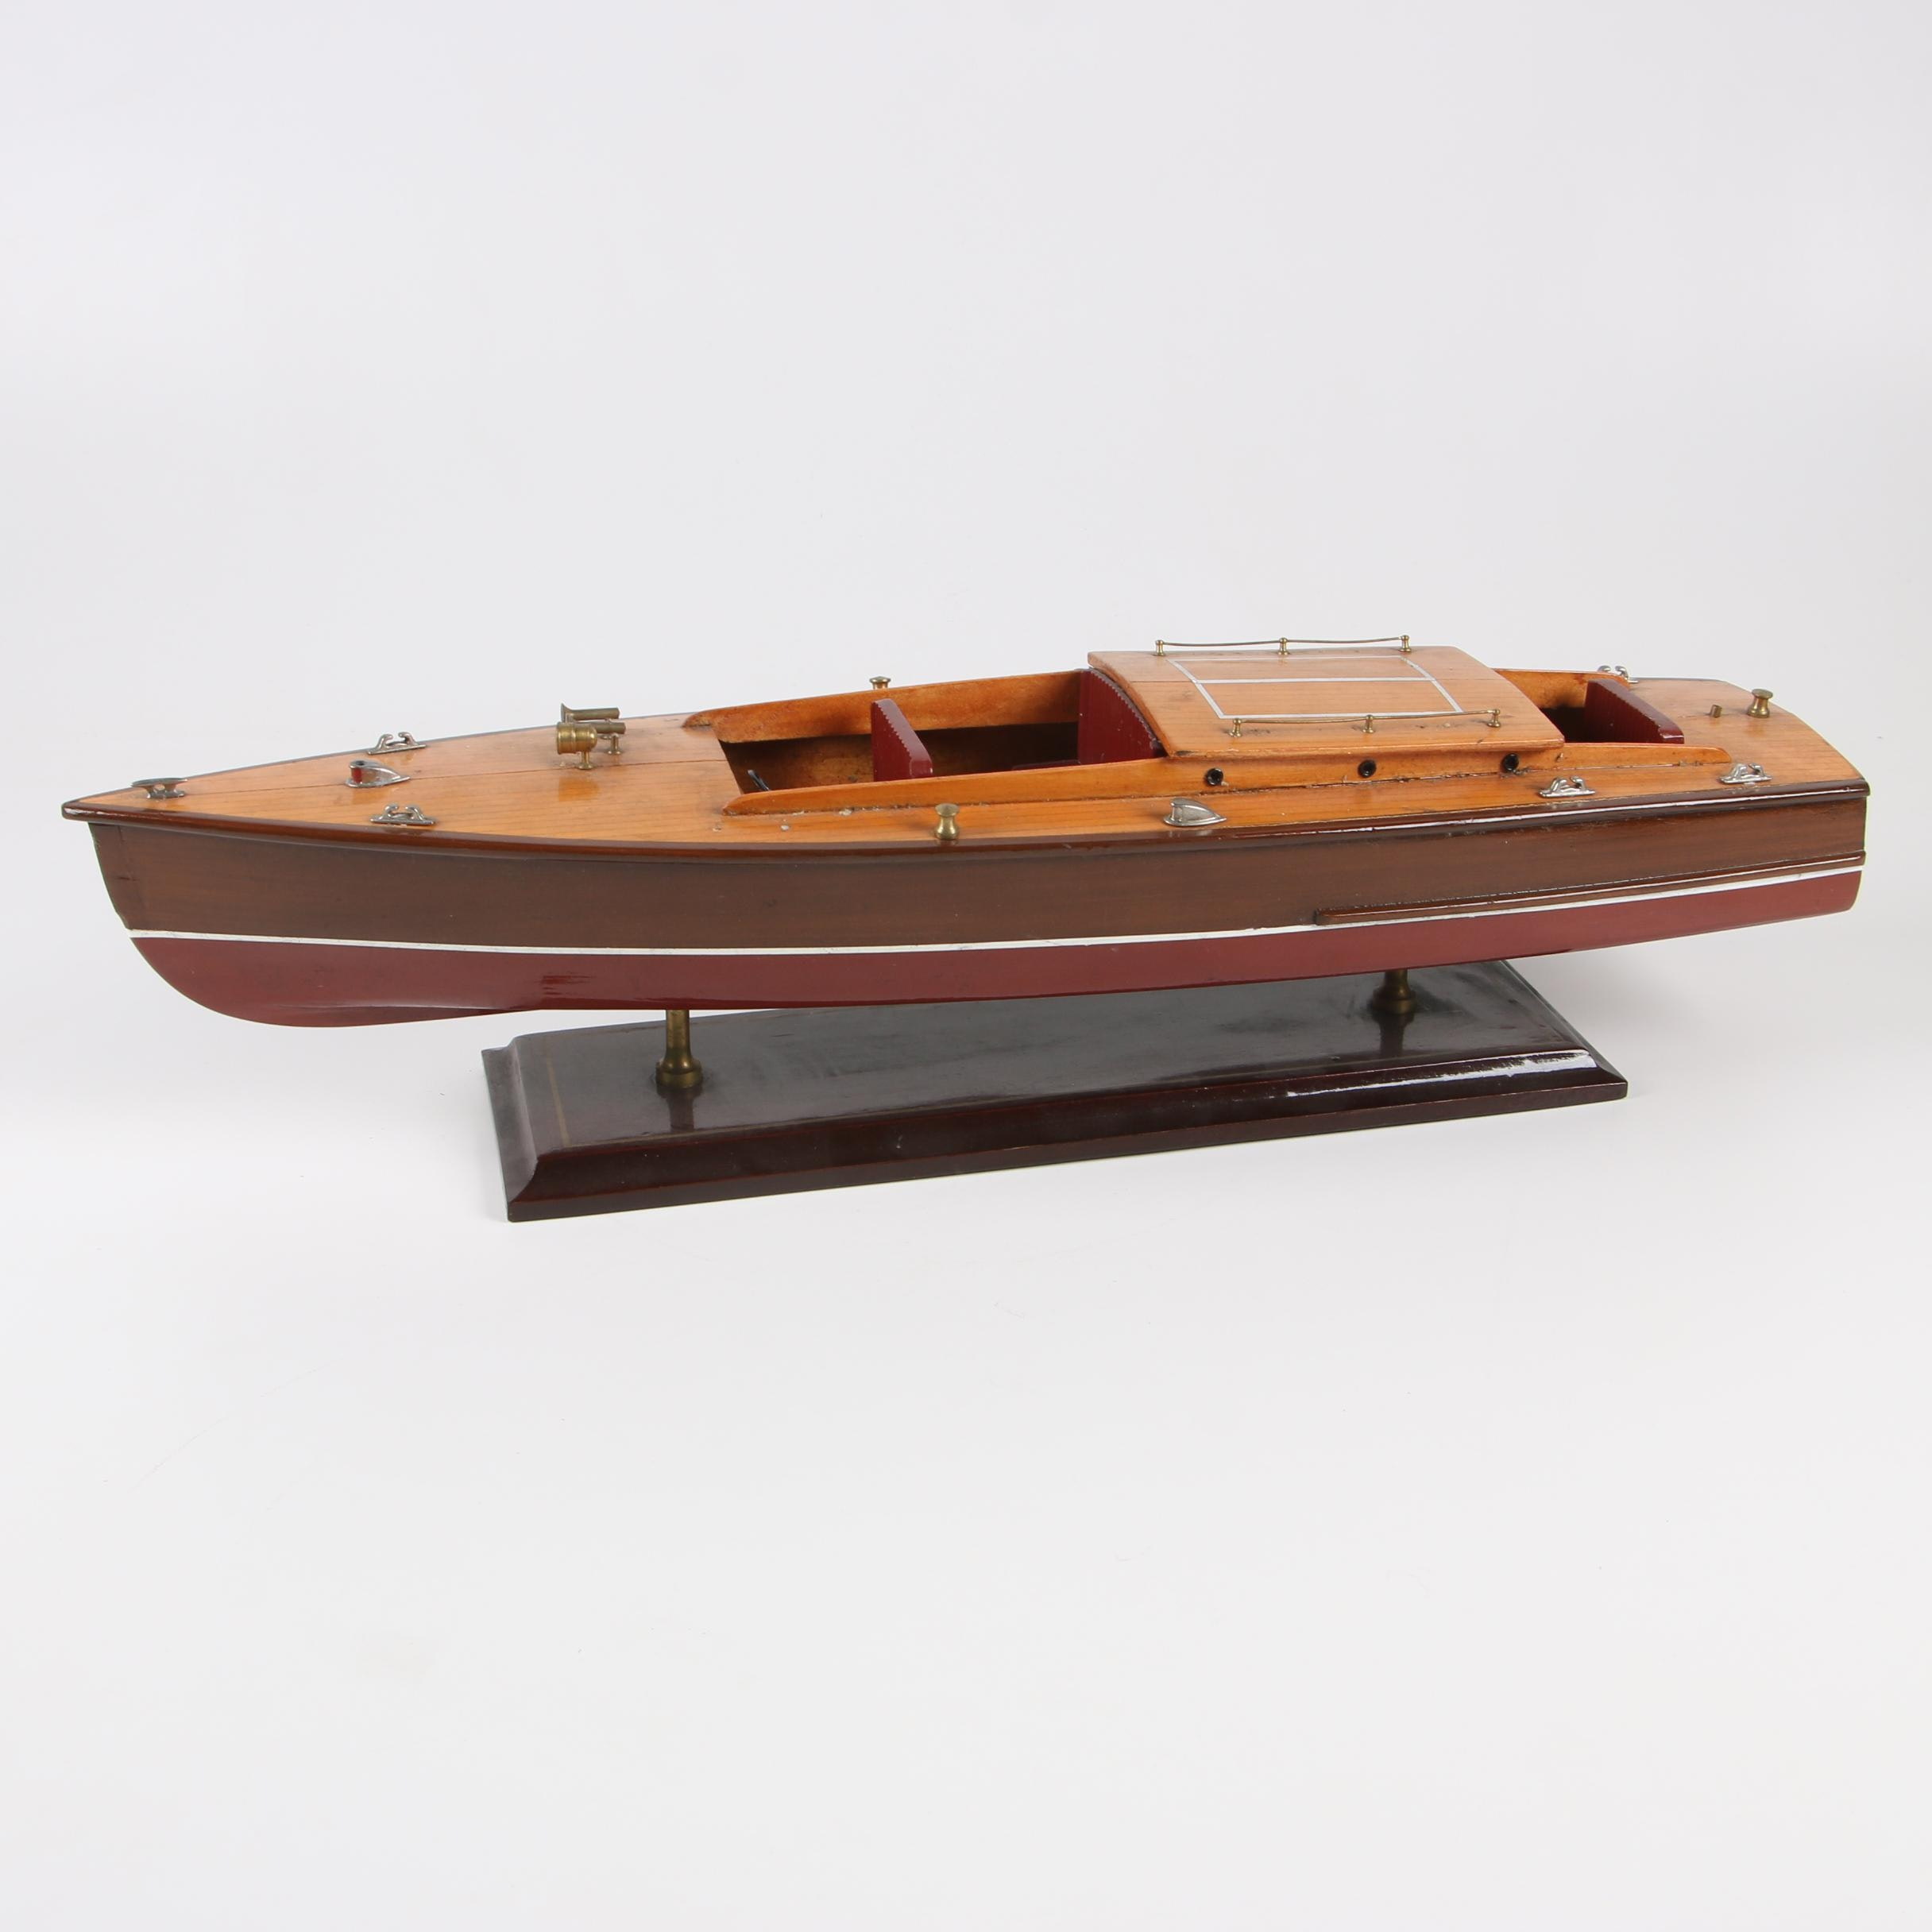 Decorative Vintage Wooden Speed Boat Model by Encore Creations